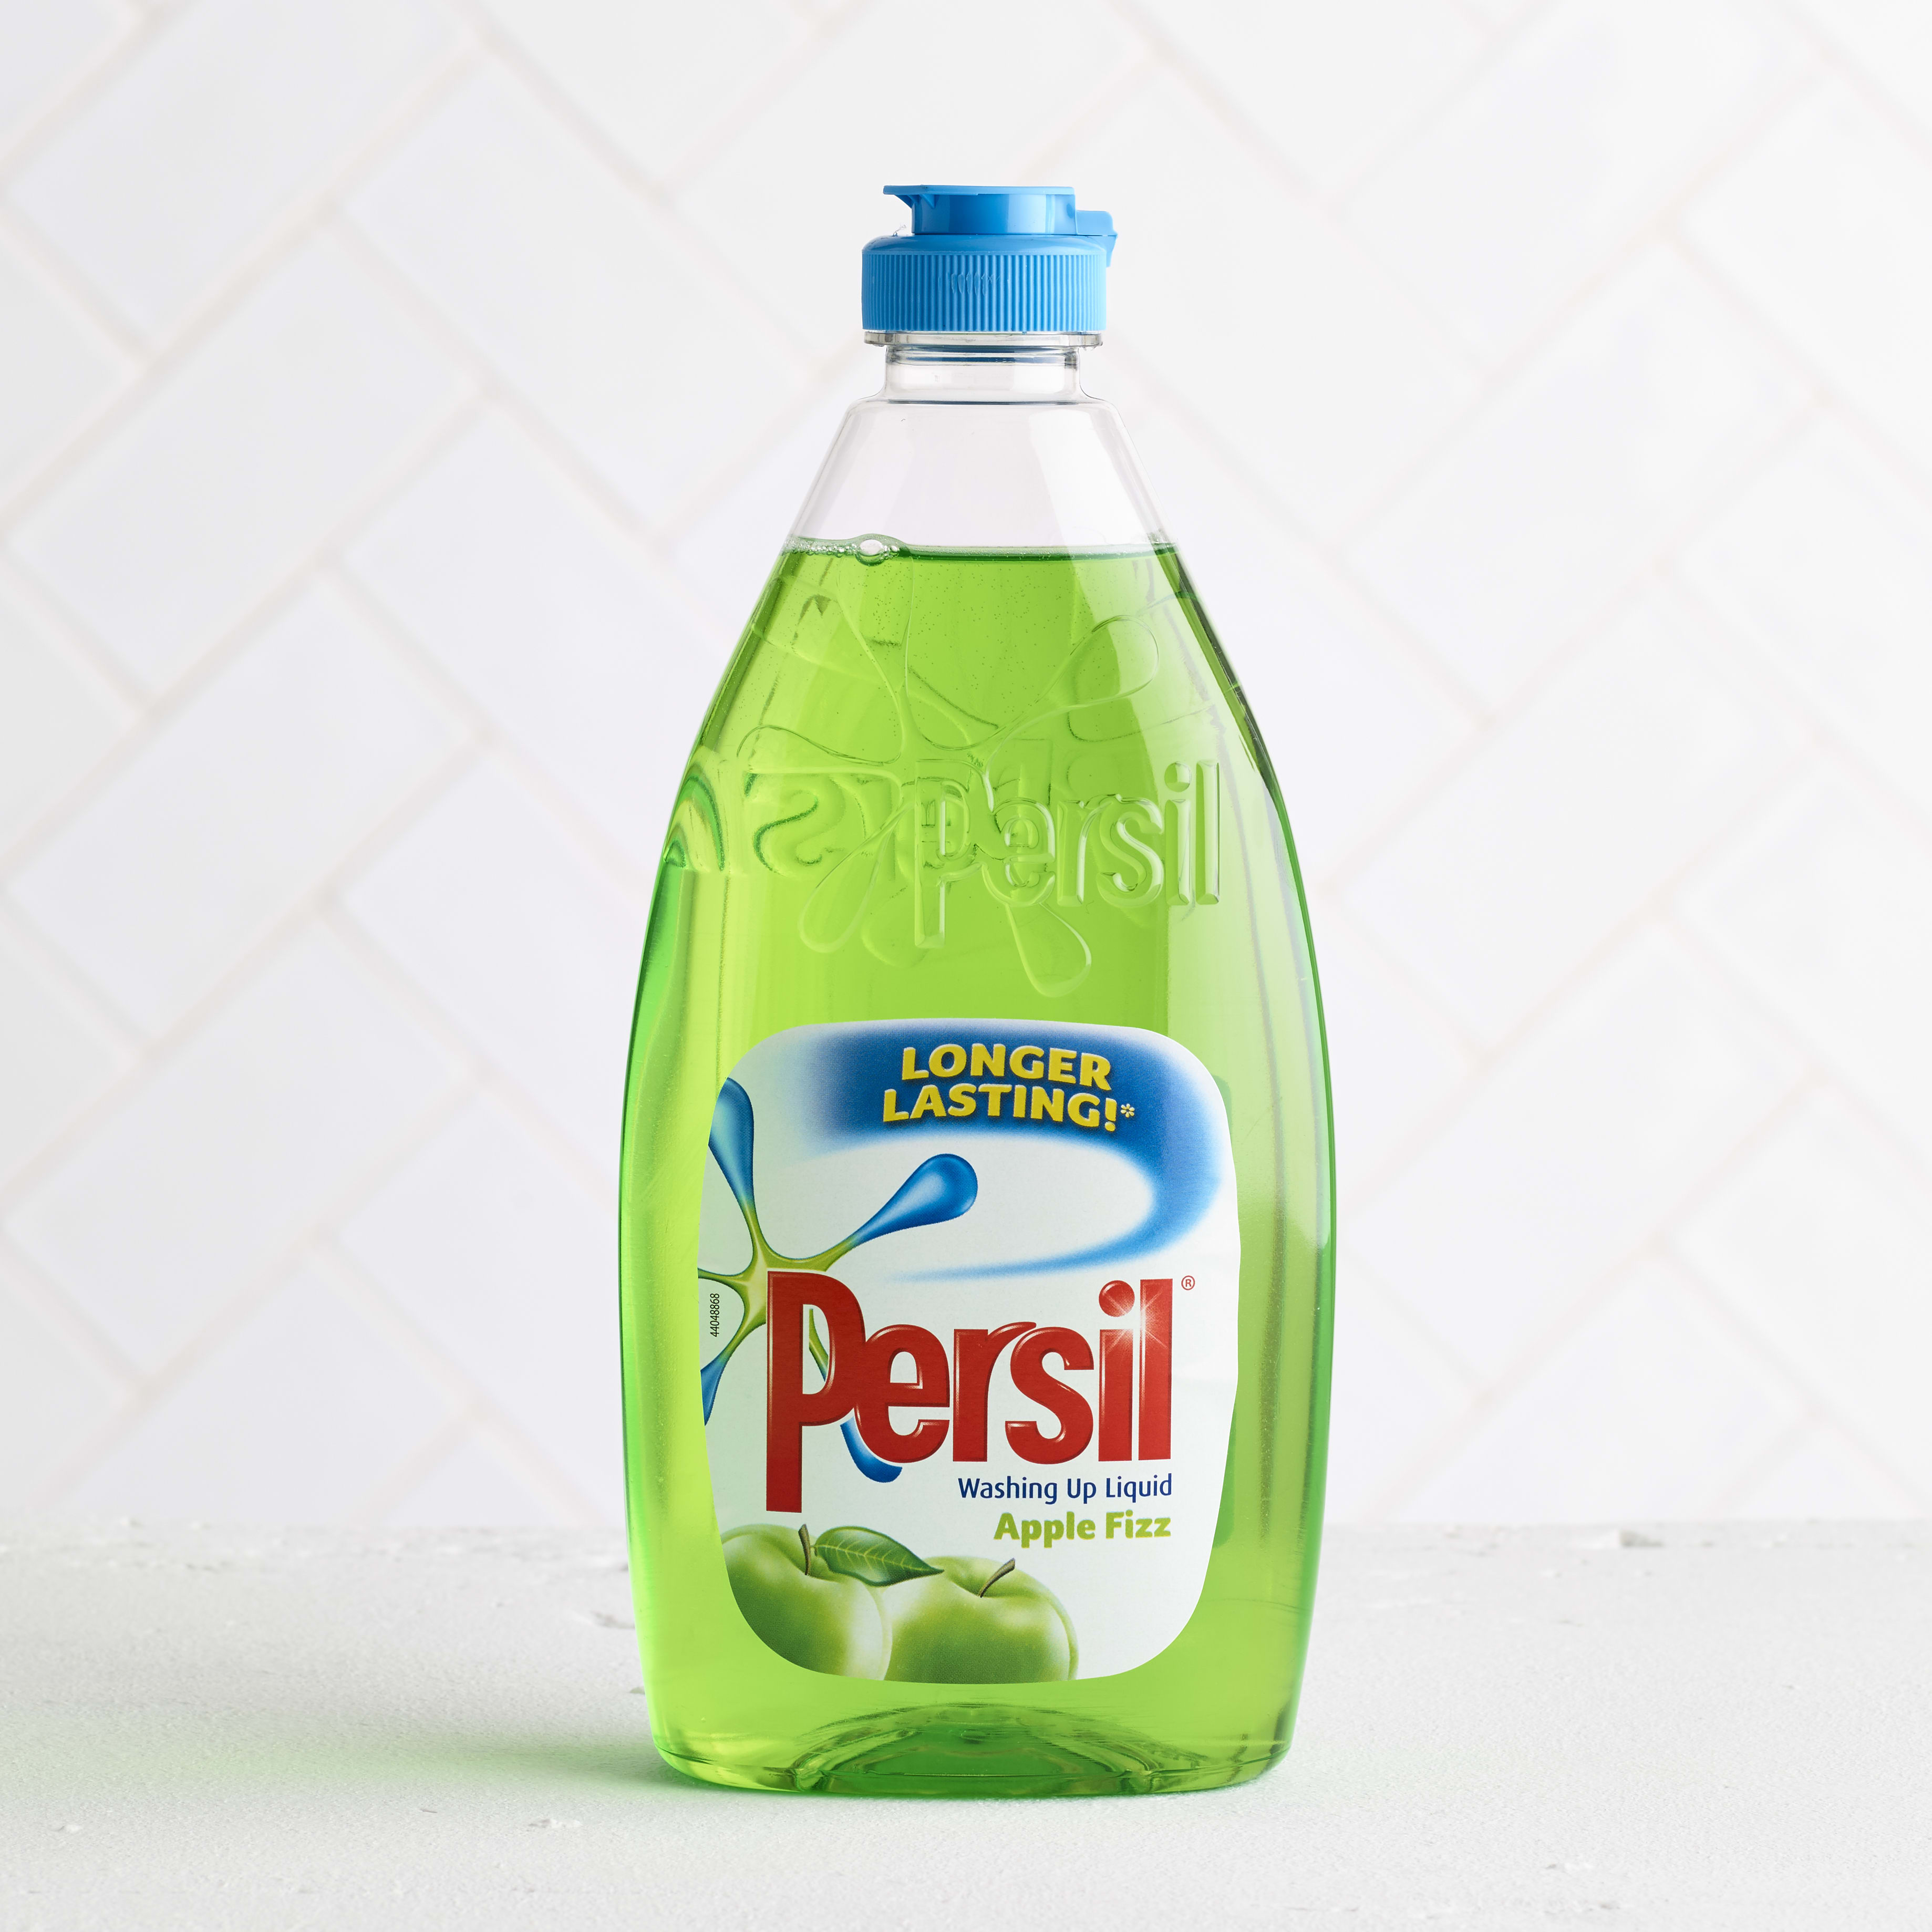 Persil Washing Up Liquid, Apple Fizz, 500ml